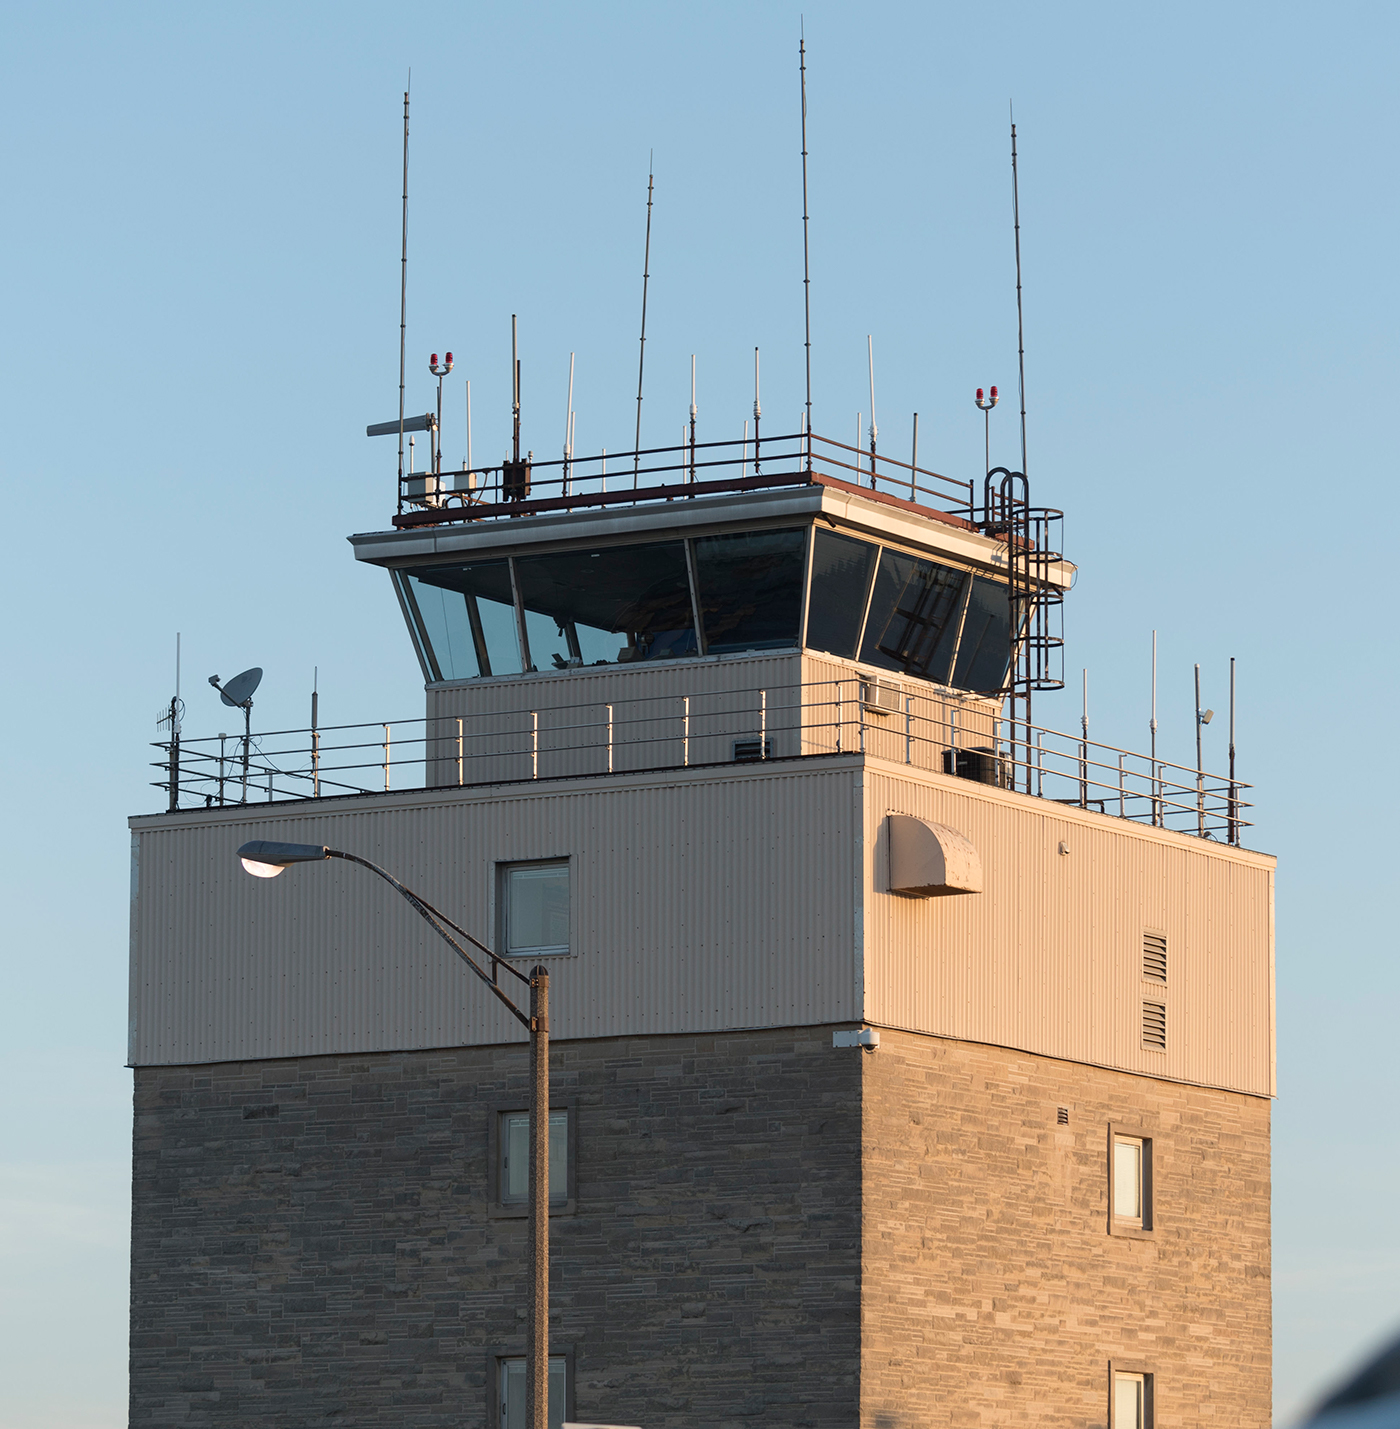 control tower at Willard Airport